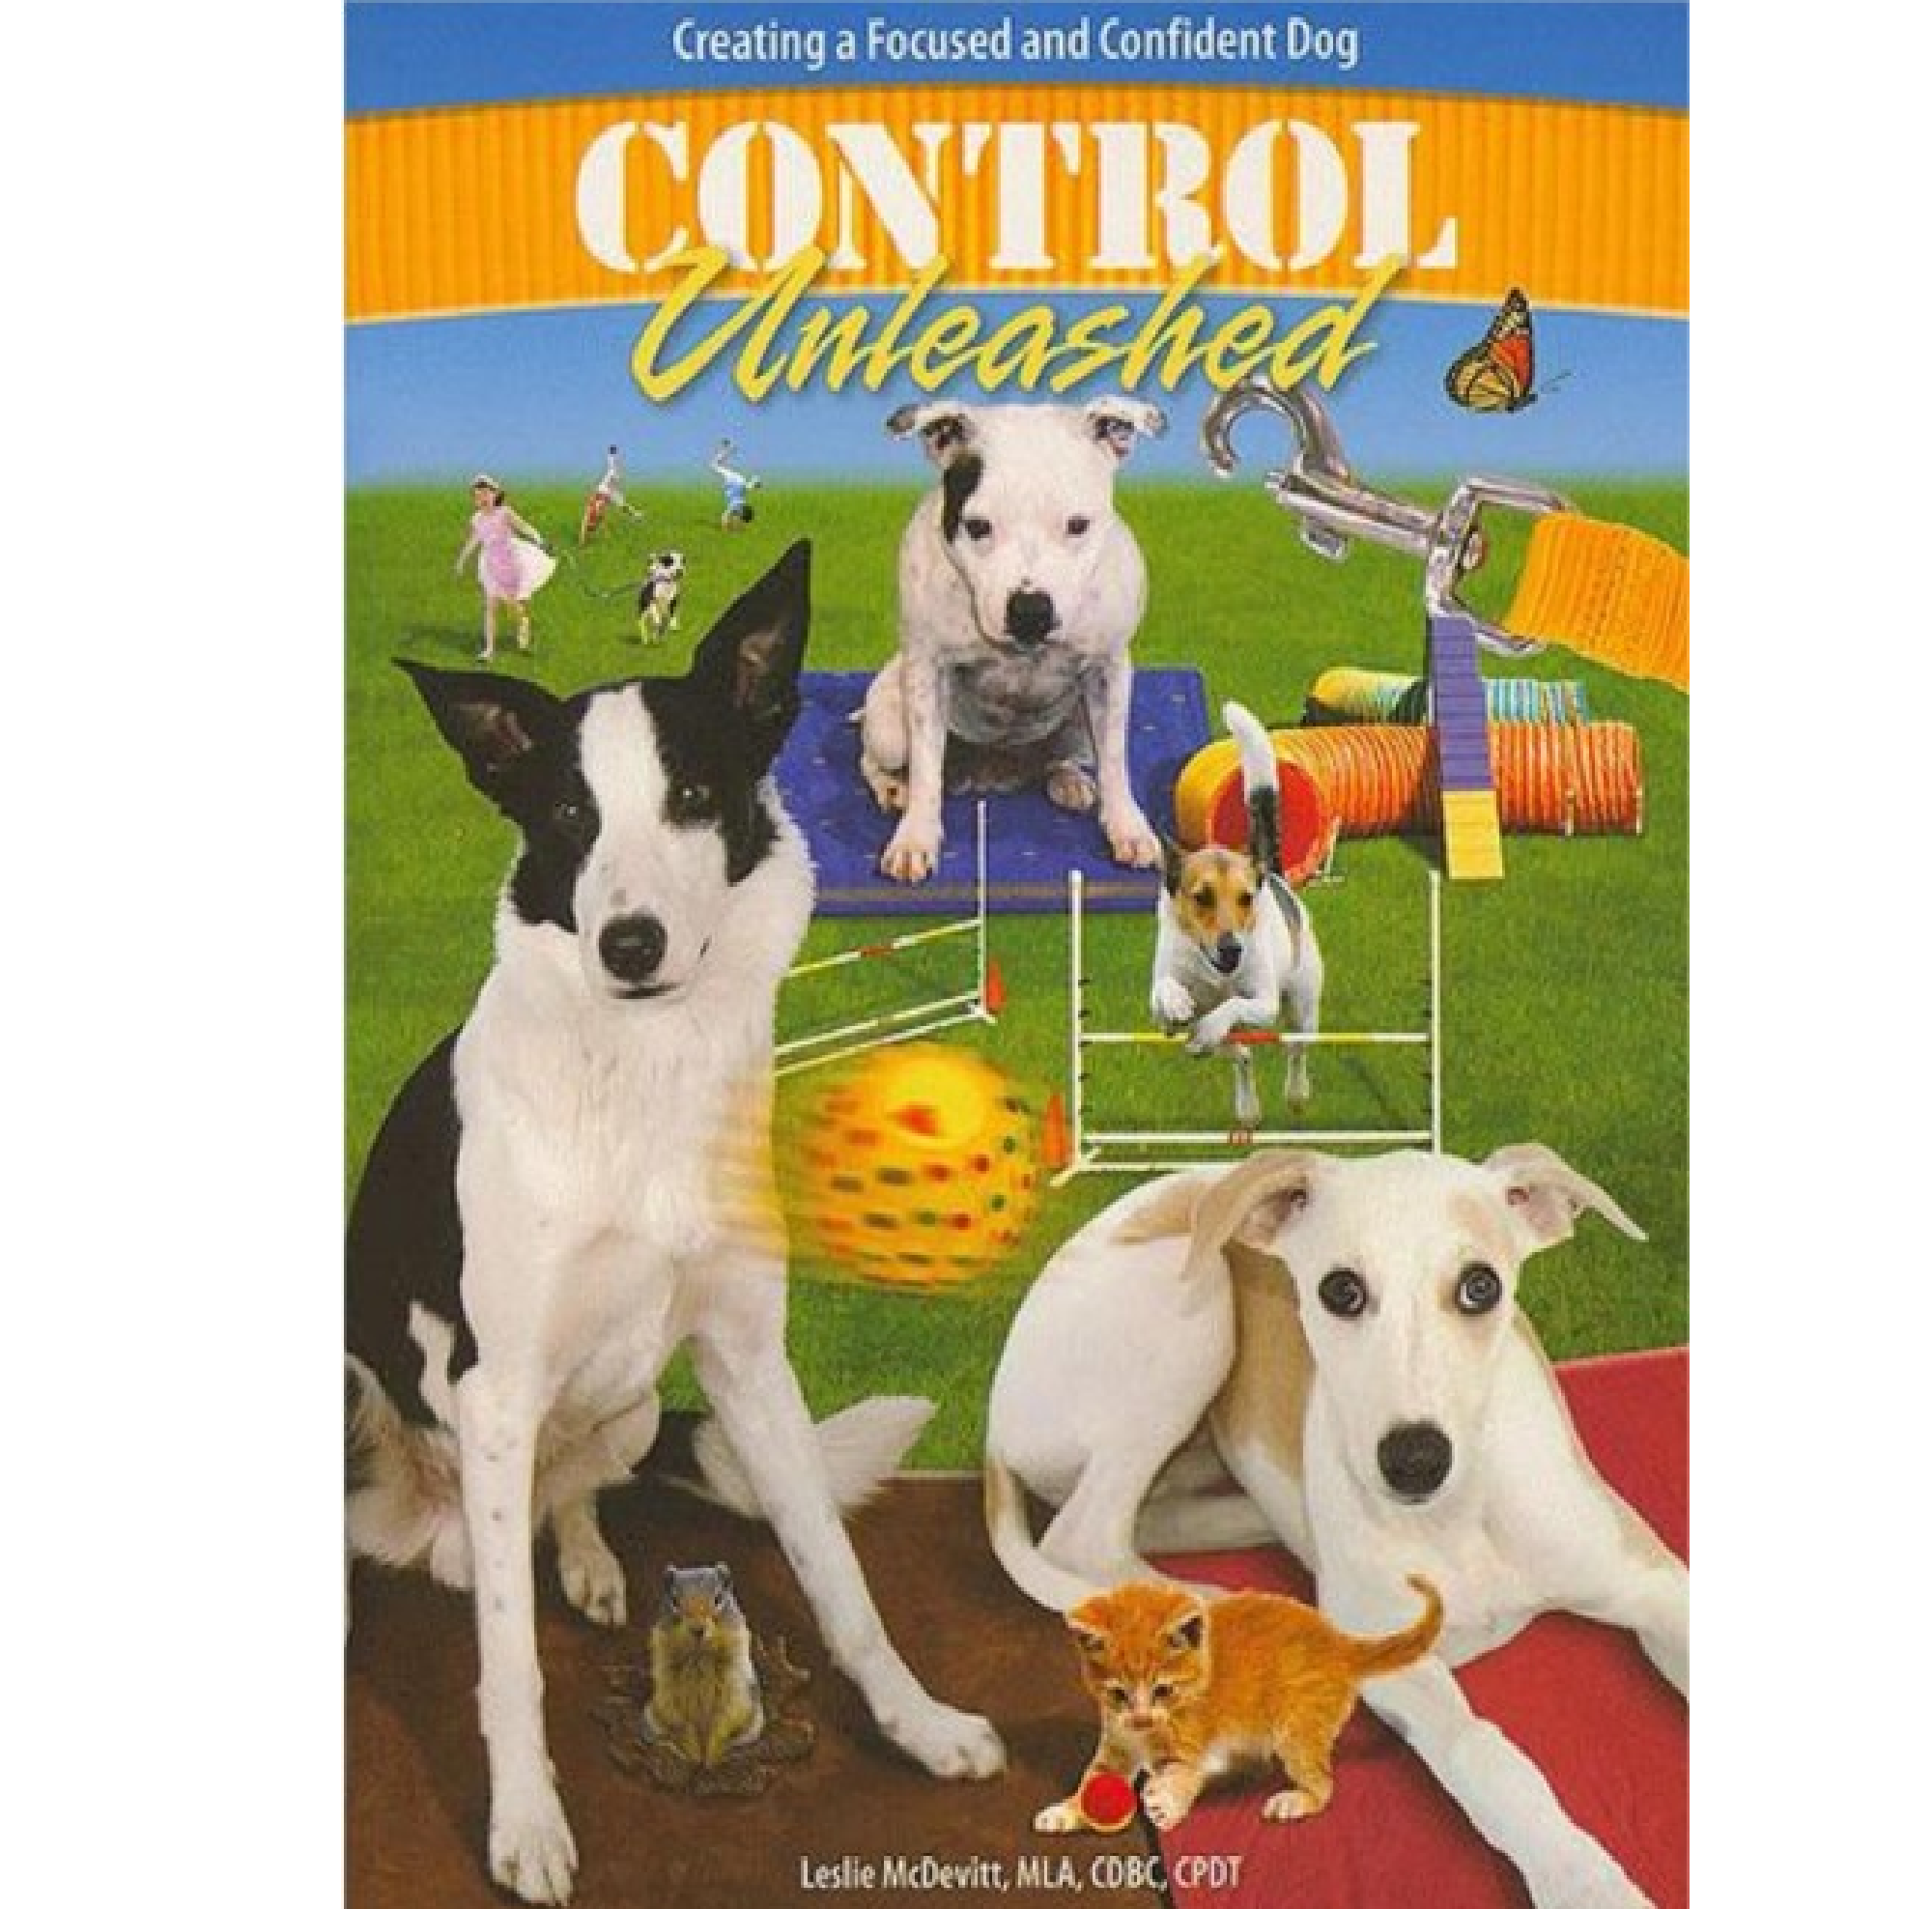 Control Unleashed - Creating A Focused and Confident Dog